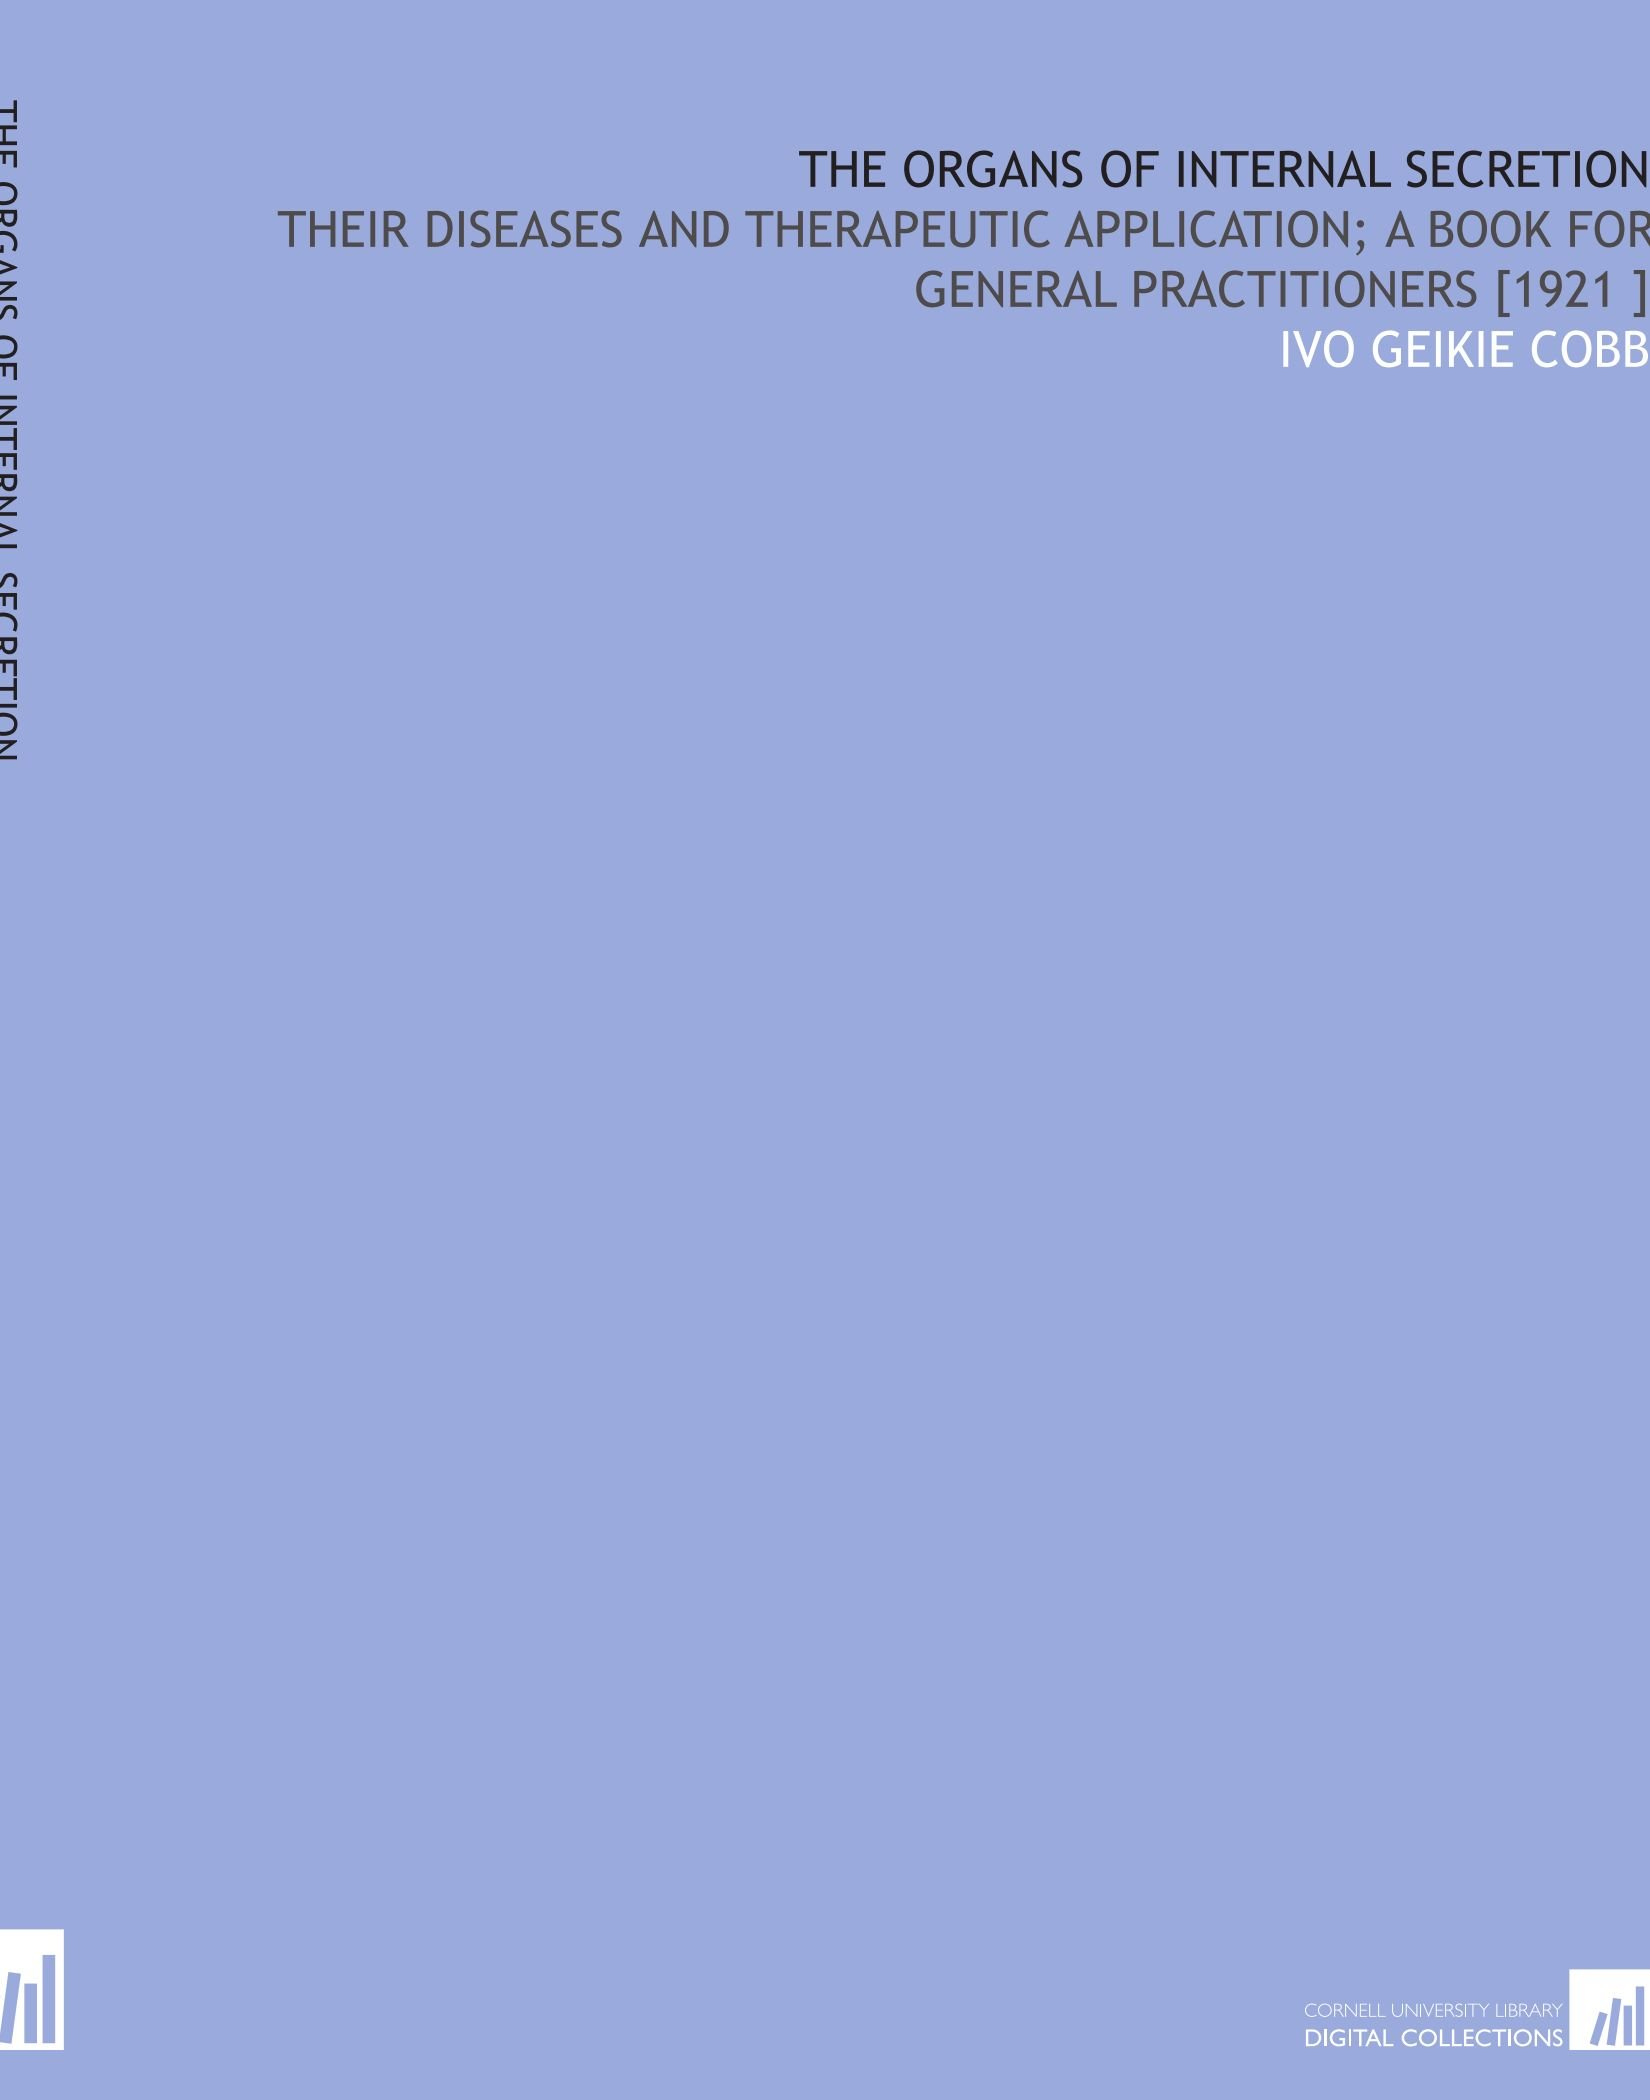 Download The Organs of Internal Secretion: Their Diseases and Therapeutic Application; a Book for General Practitioners [1921 ] pdf